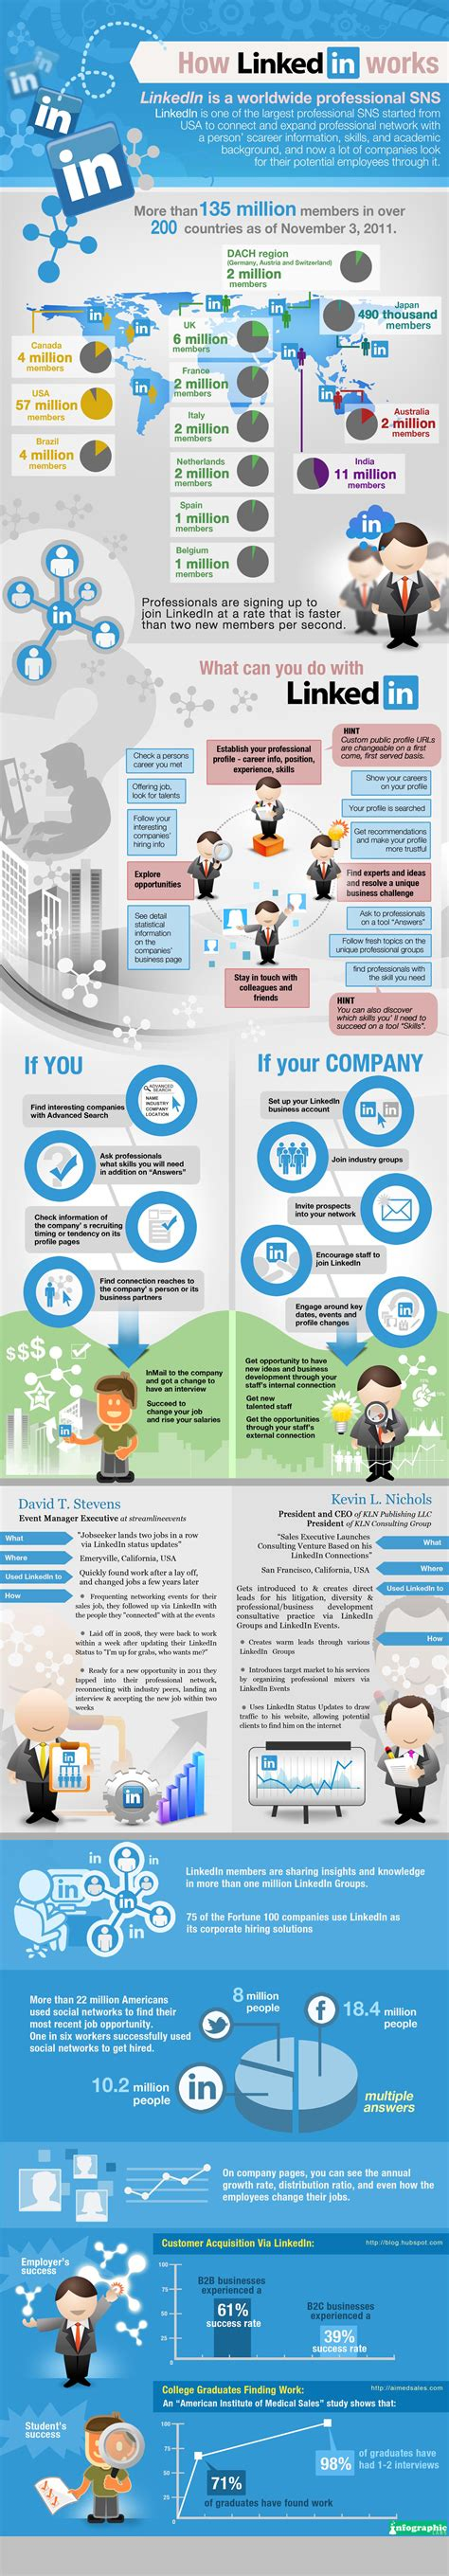 Best Way To Use Linkedin For by The Best Ways To Use Linkedin For Business Infographic